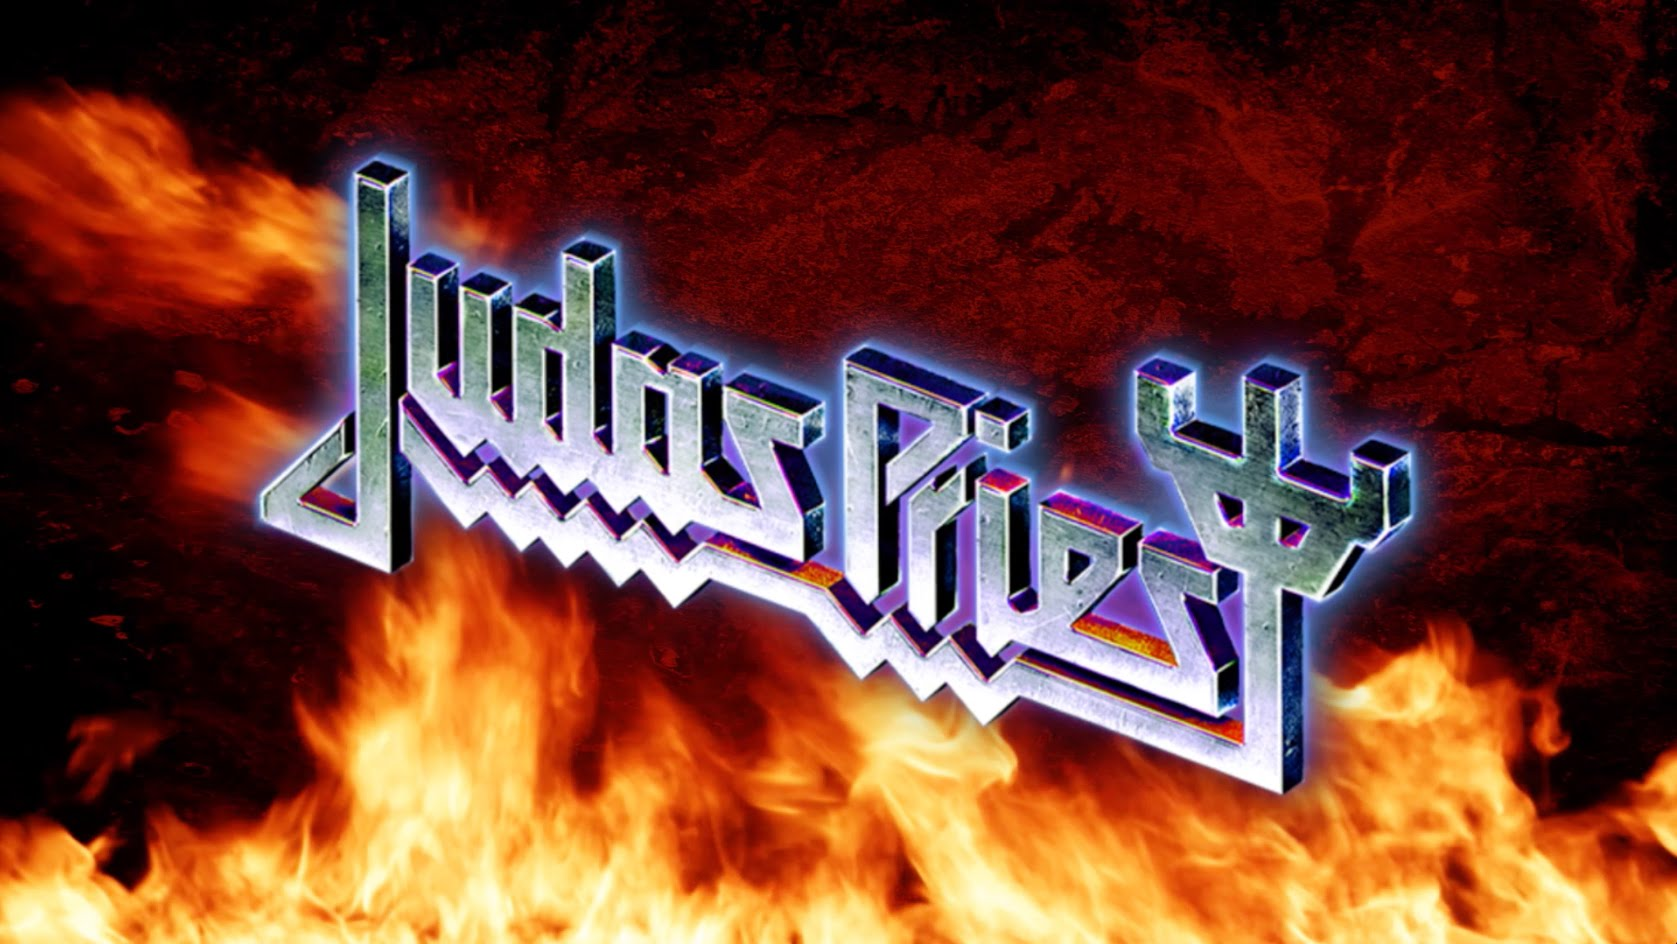 Judas Priest - Glenn Tipton on How Songs Take Shape